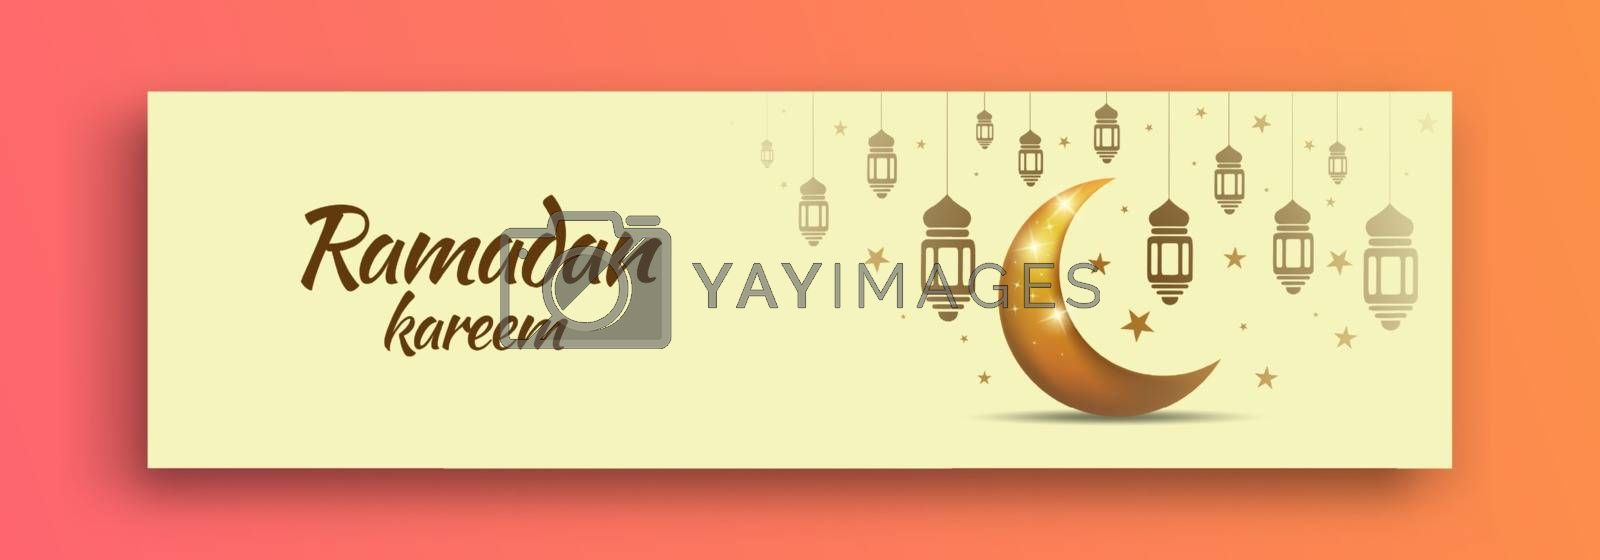 Banner for Ramadan Preparation with a Shining Moon Design, lanterns and stars